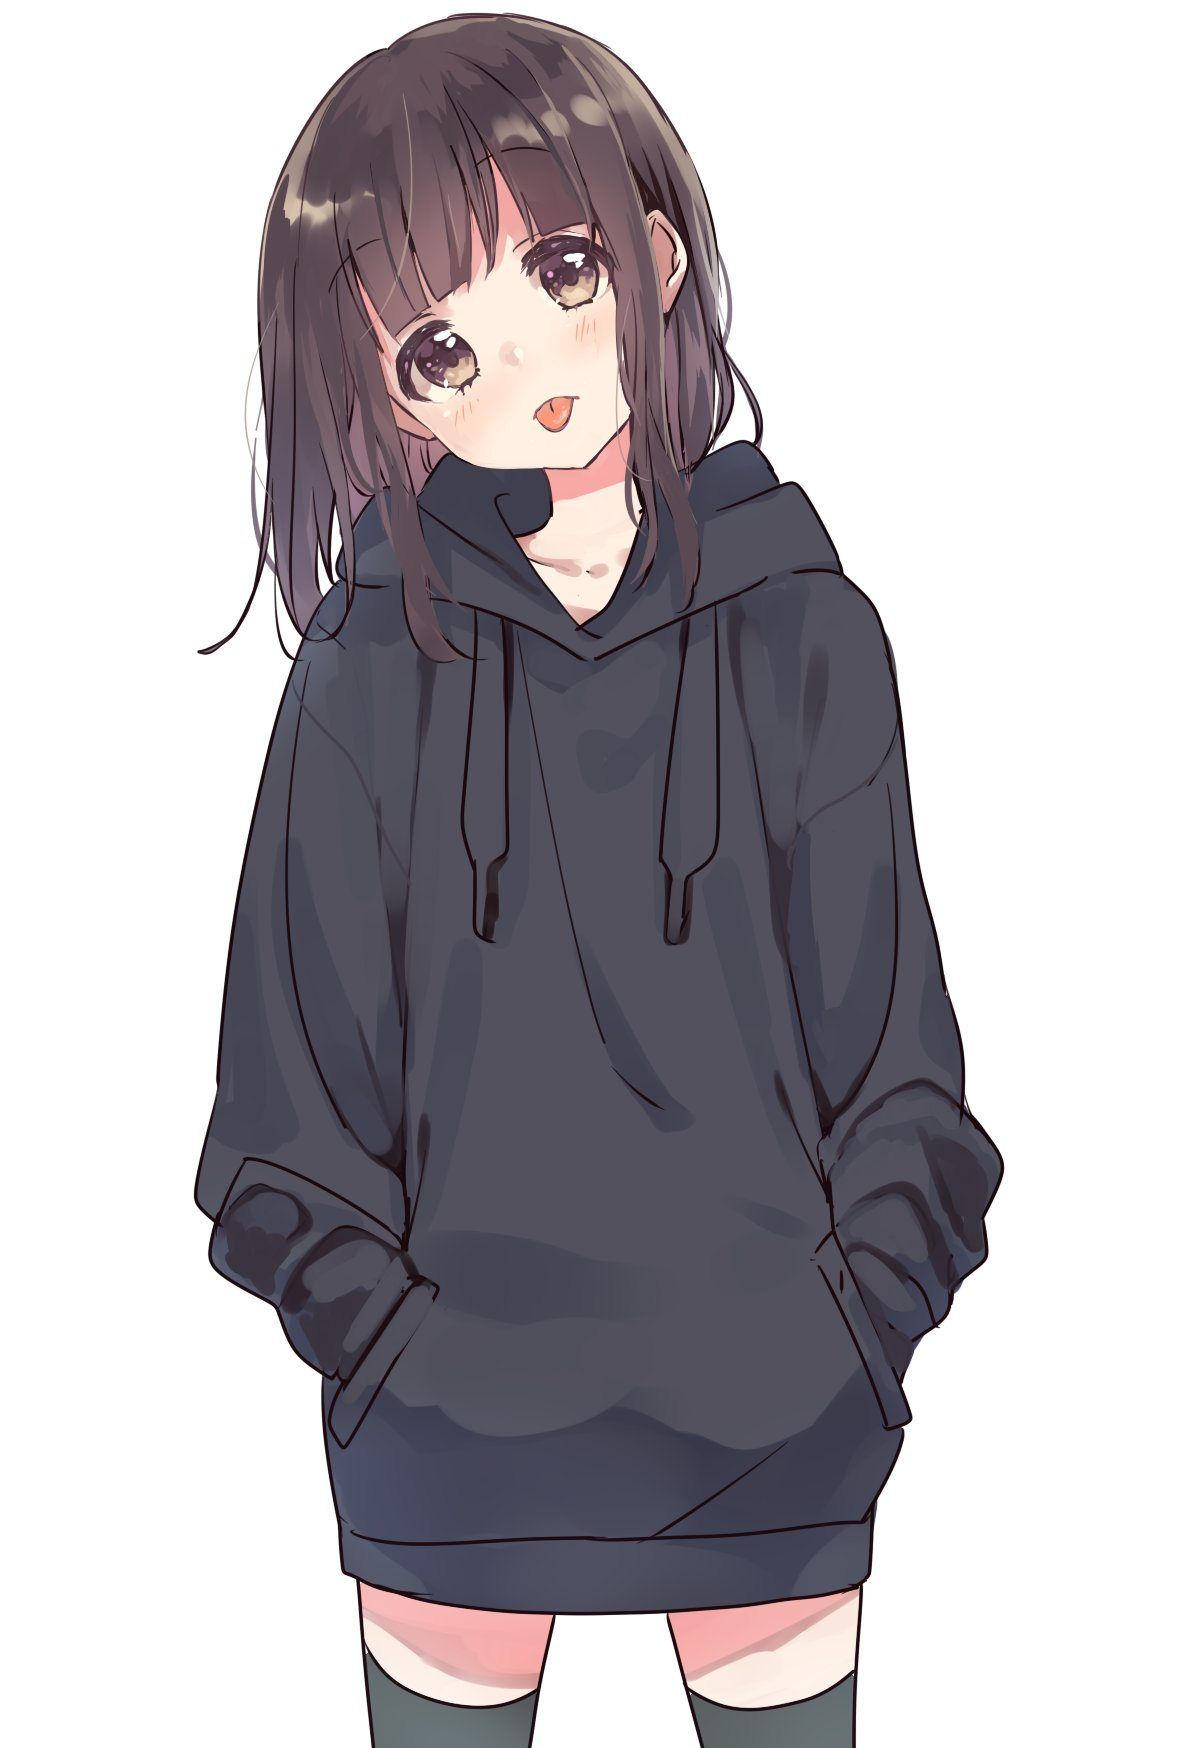 Hoodie Anime Girl Drawing : hoodie, anime, drawing, Anime, Tasty, Thighs